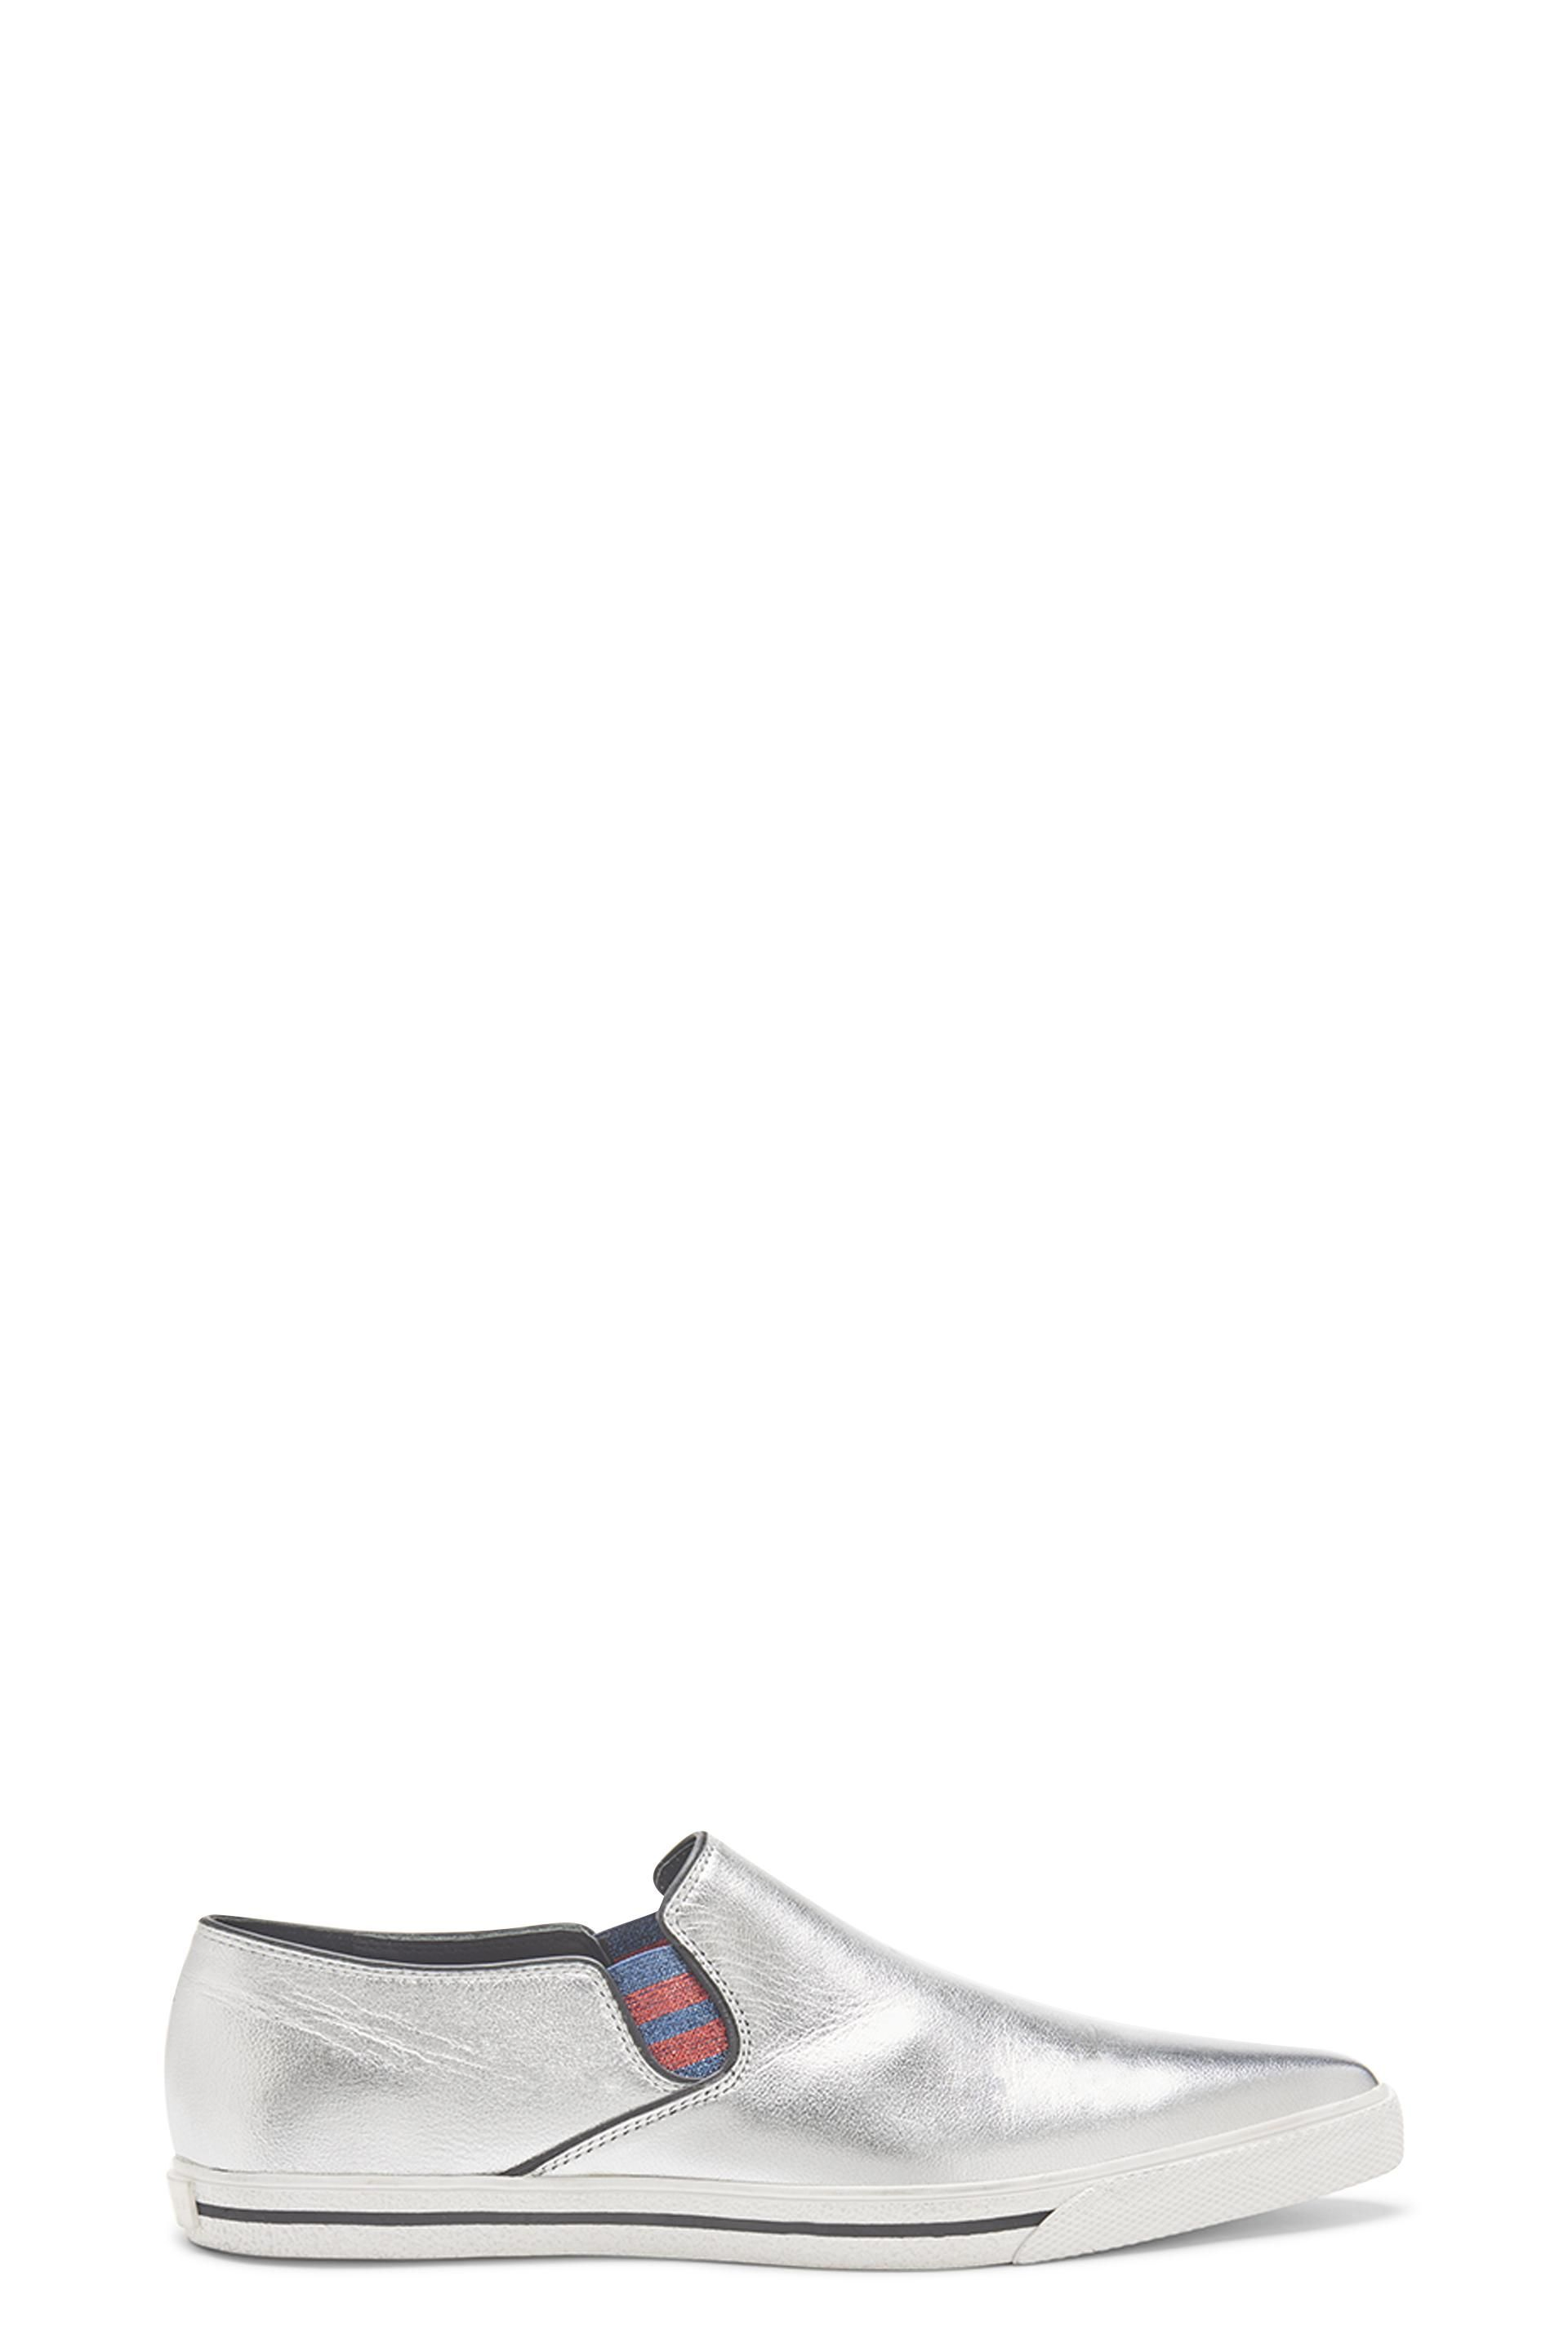 The Marc Jacobs Delancey Slip On Sneaker is crafted from smooth Vachetta leather with a metallic foil finish. Slip on construction with elastic gores and a rubber sole give this style comfort. Whole sizes only 35-41. 100% Calf Leather bRBrMade In Italy